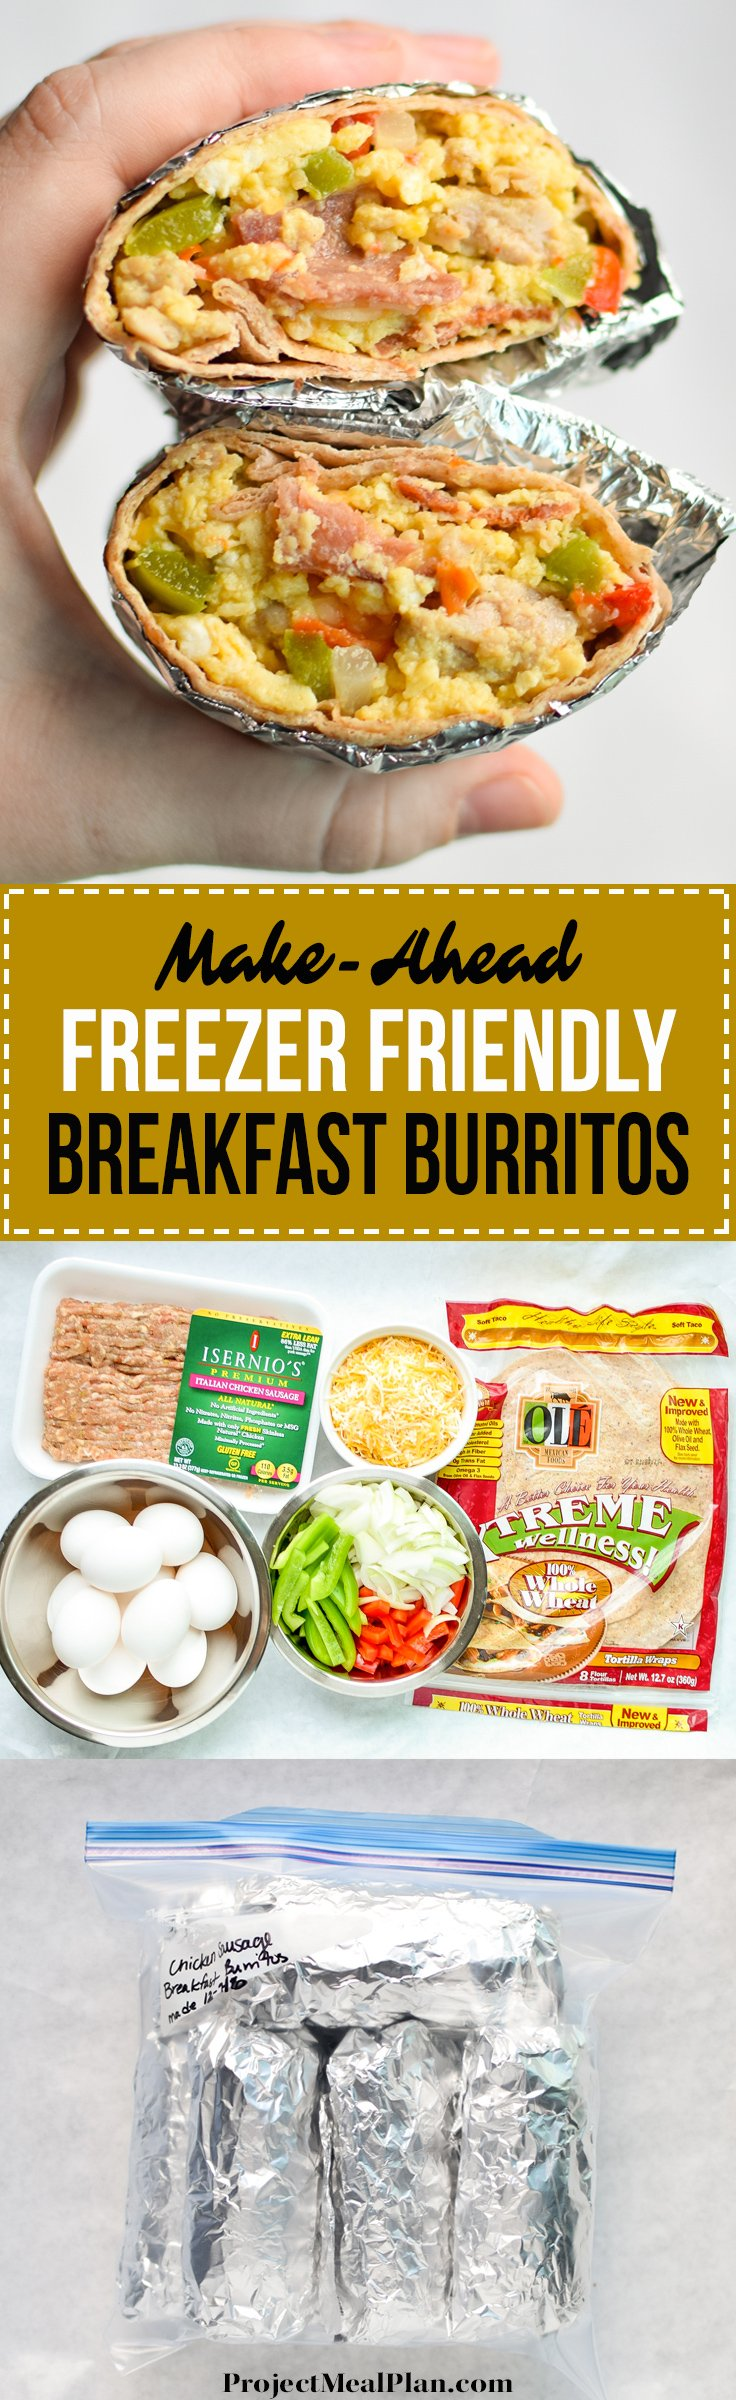 Make-Ahead Freezer Friendly Breakfast Burritos recipe - Method and tips for making your very own freezer friendly breakfast burritos! - ProjectMealPlan.com